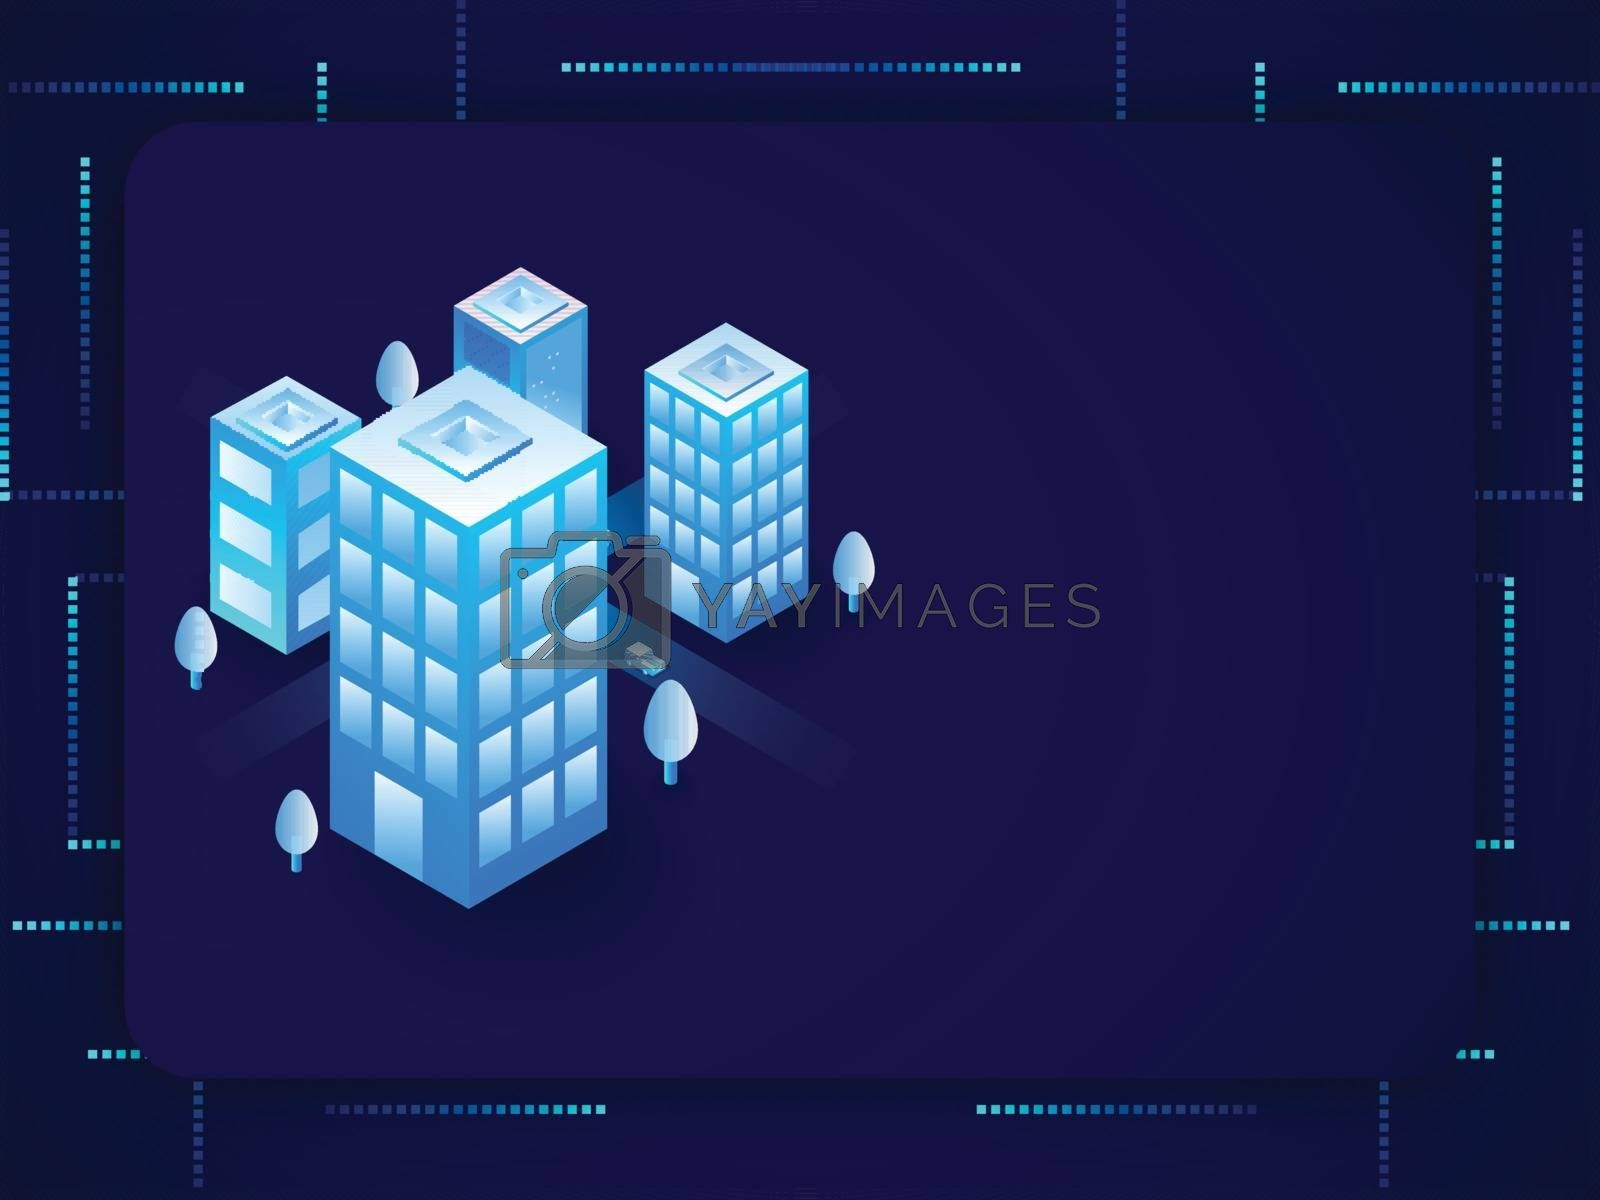 Royalty free image of Futuristic smart city concept based isometric design with archit by aispl